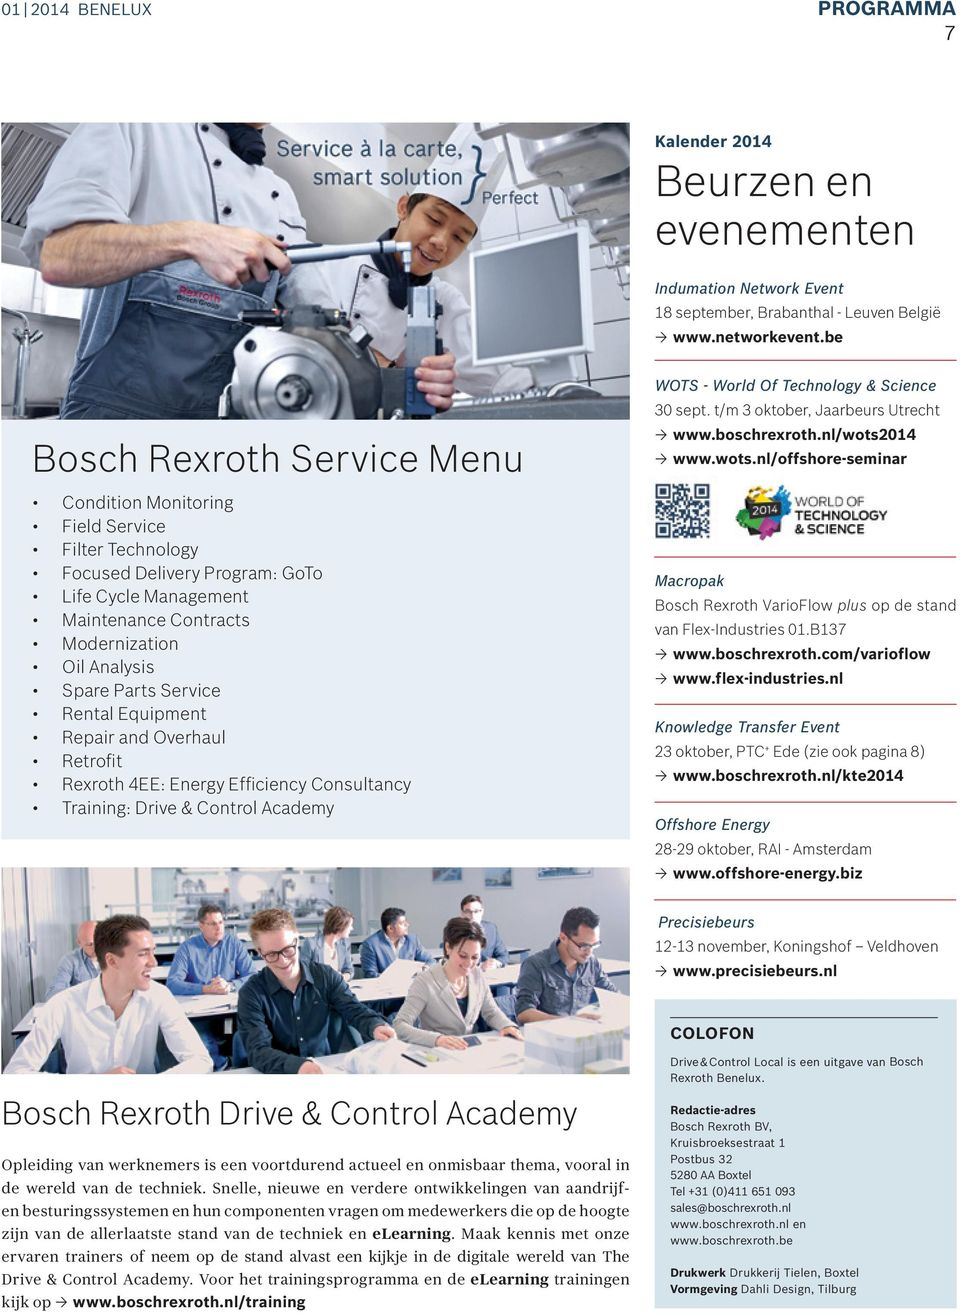 Service Rental Equipment Repair and Overhaul Retrofit Rexroth 4EE: Energy Efficiency Consultancy Training: Drive & Control Academy WOTS - World Of Technology & Science 30 sept.